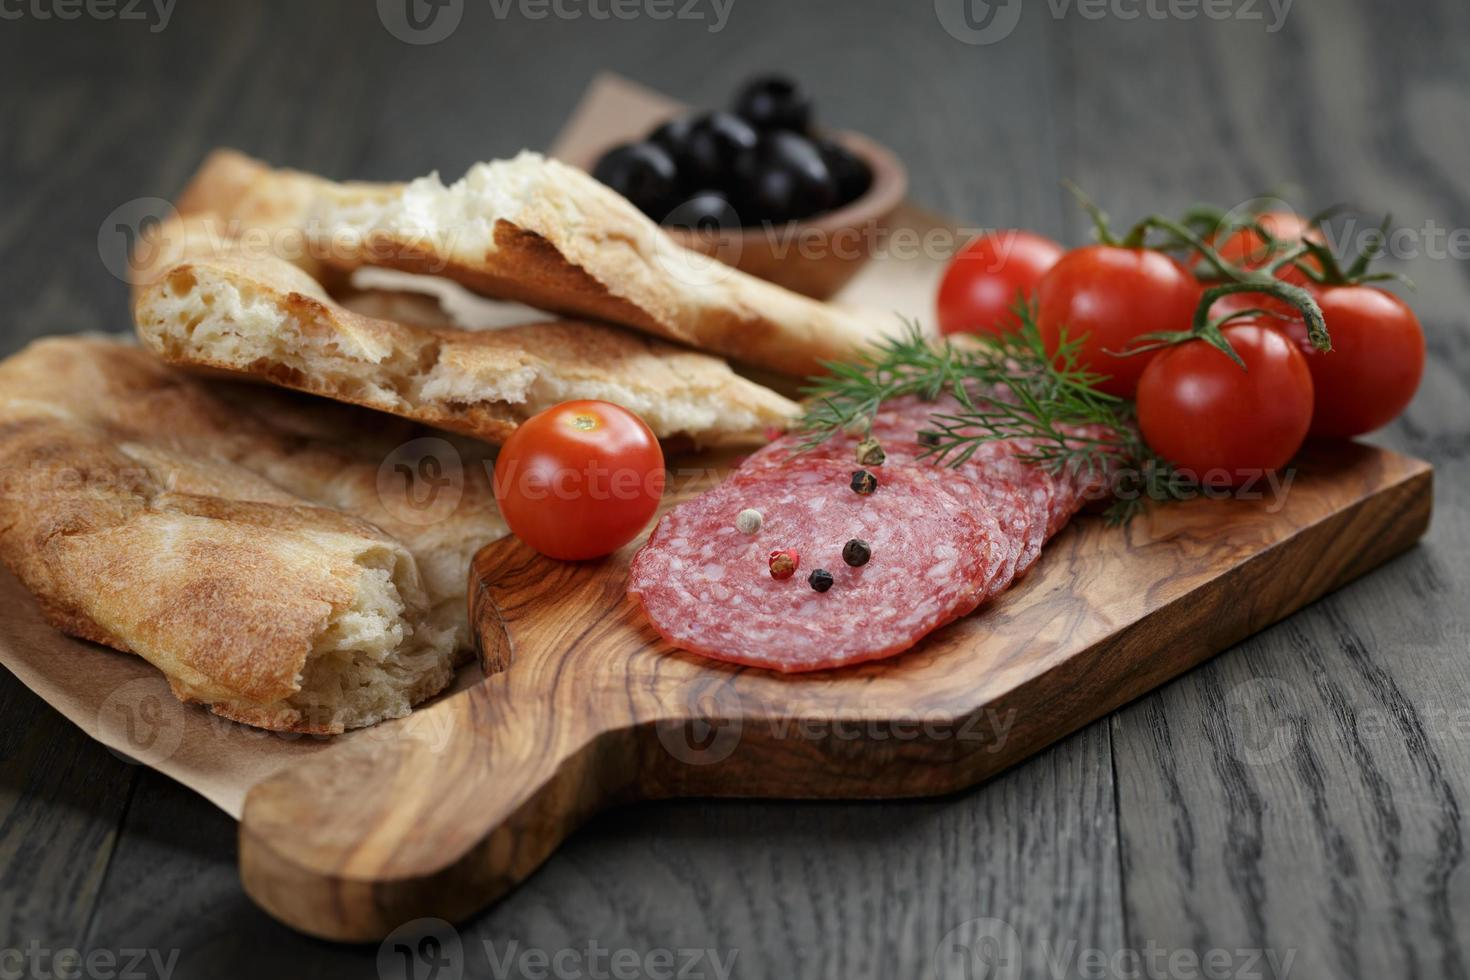 Antipasti with salami, olives, tomatoes and bread photo